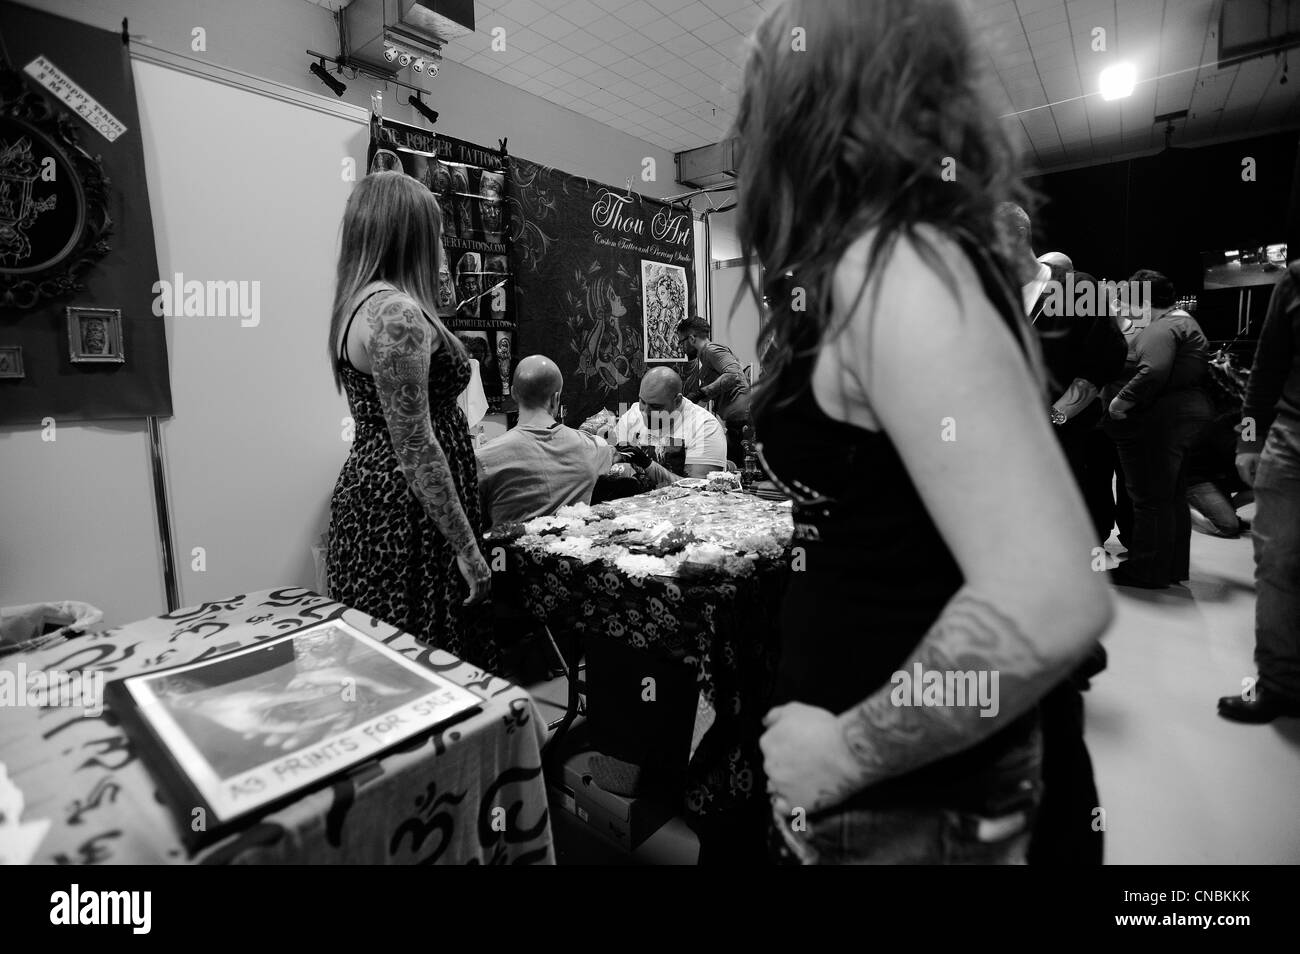 Tattooists from around the world work at The Edinburgh Tattoo Convention 2012 in Edinburgh, Scotland. Stock Photo